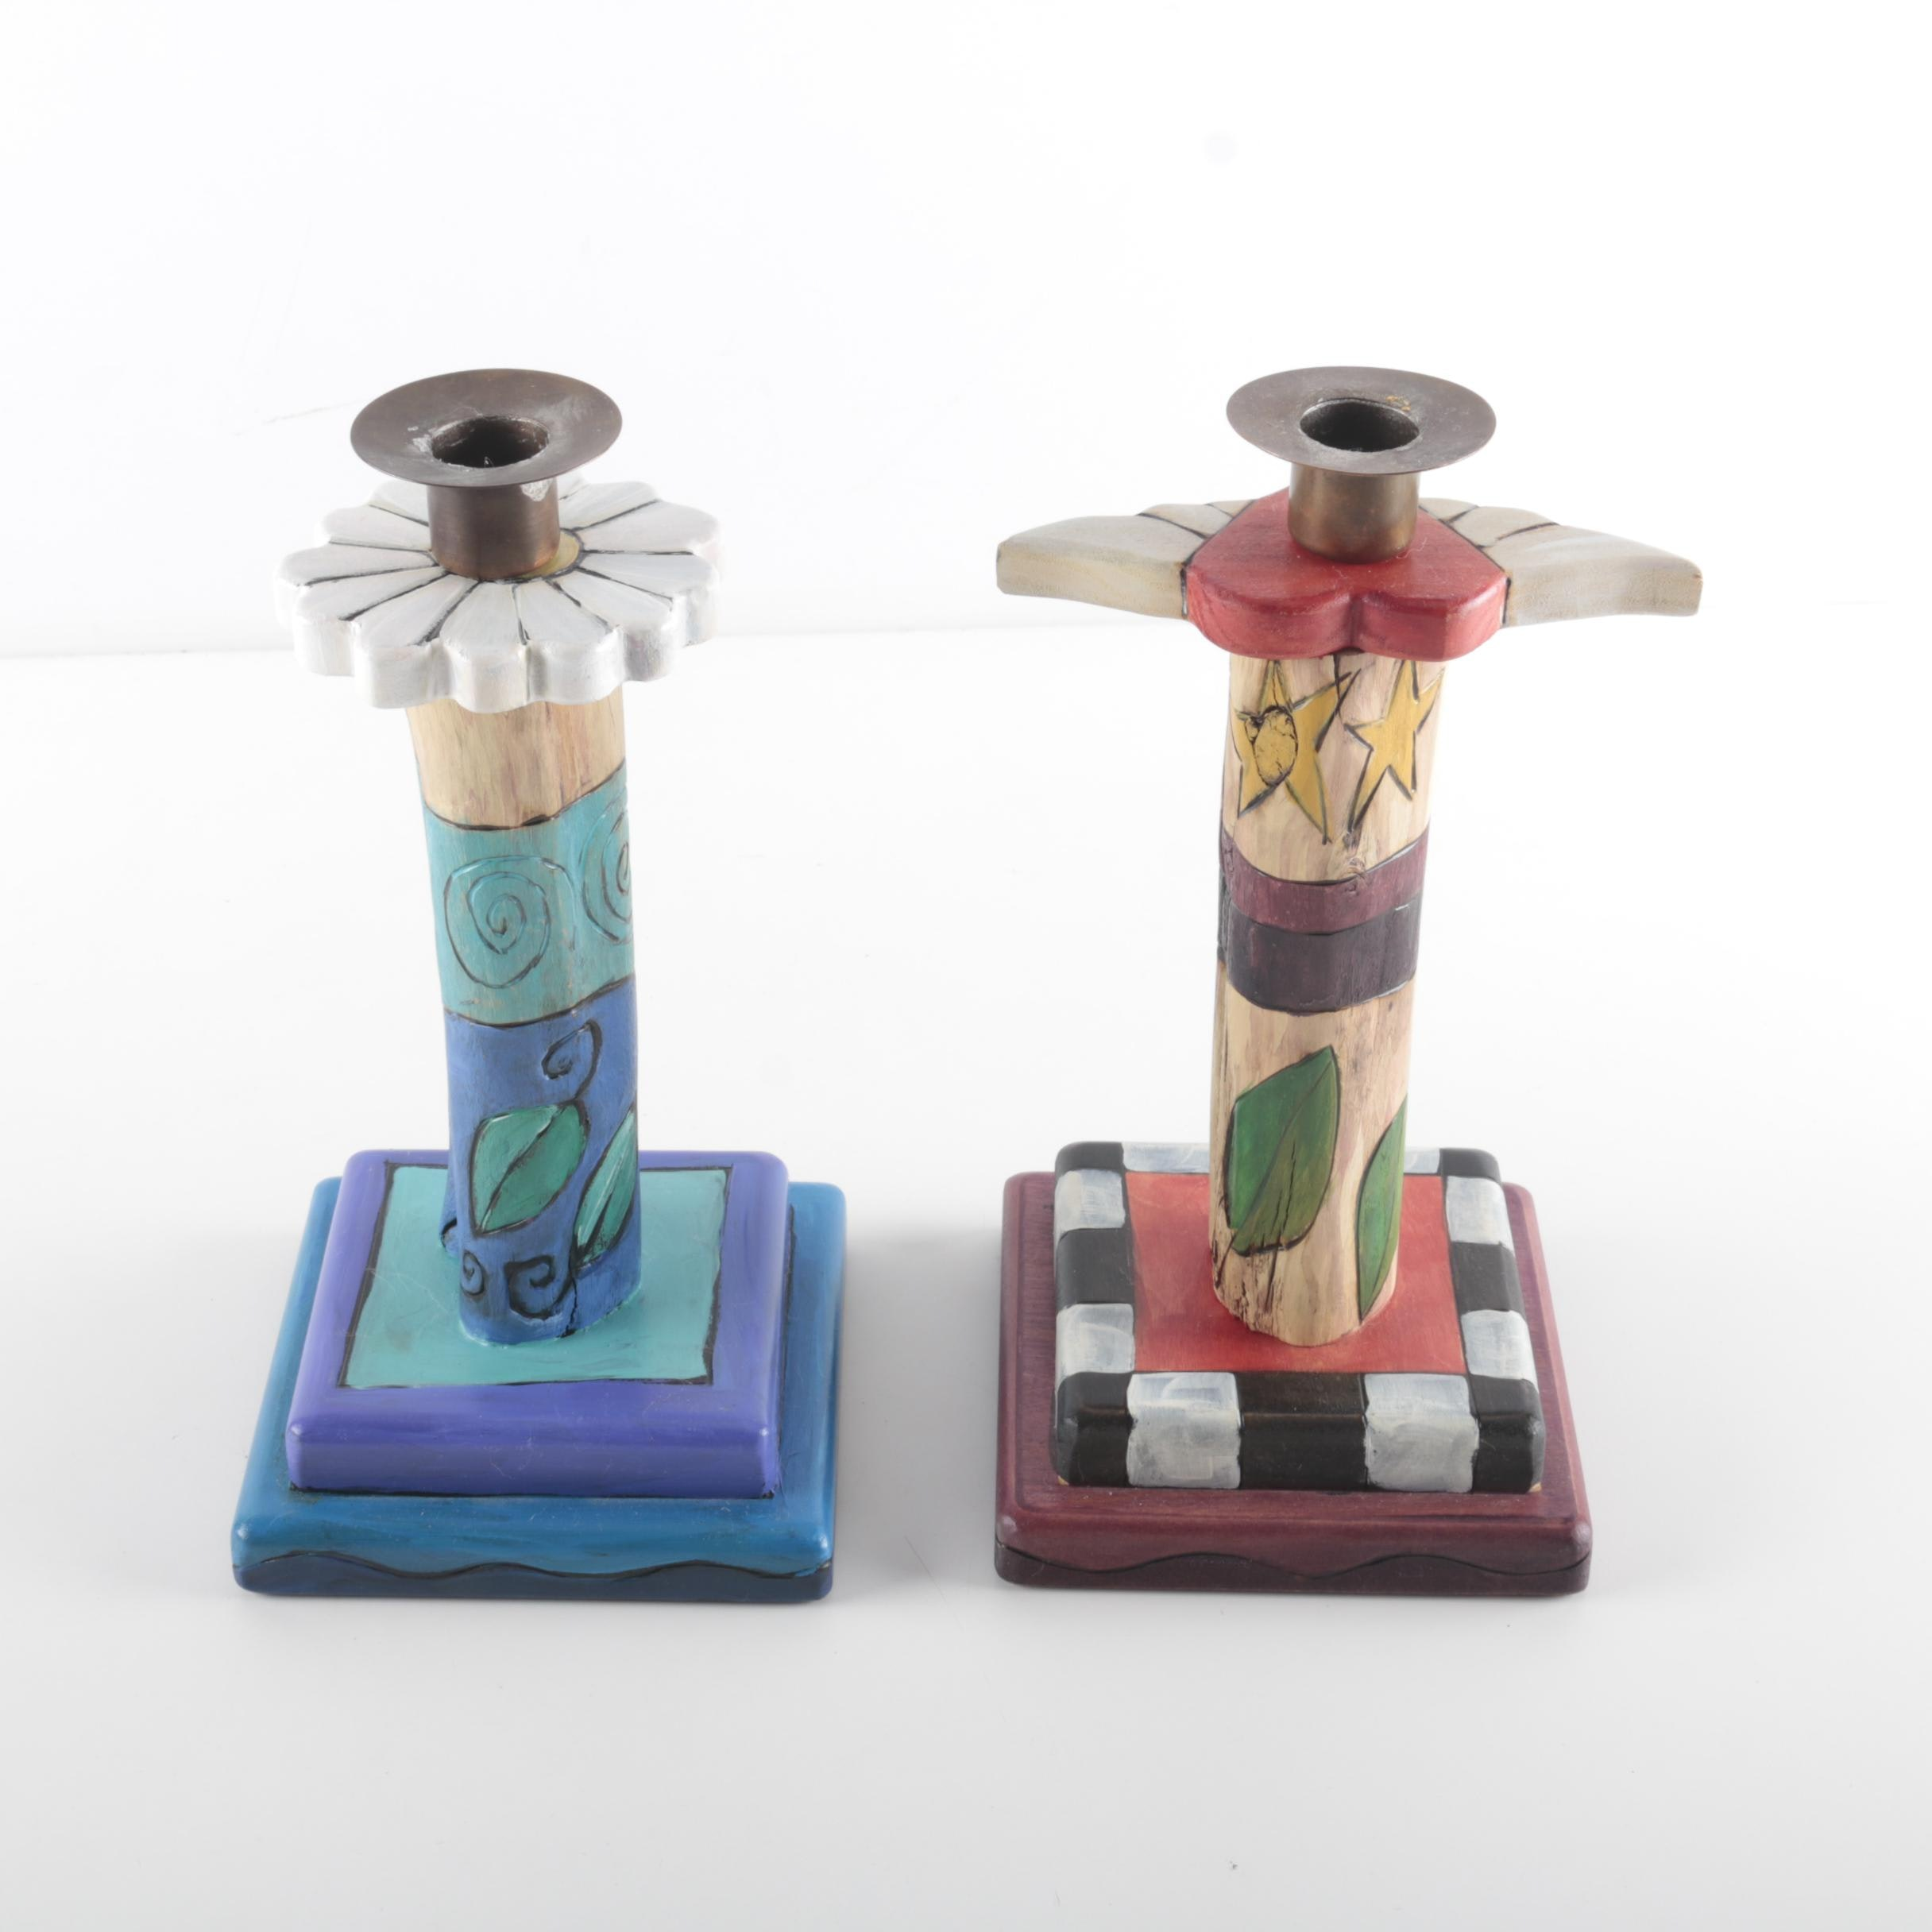 Pair of Hand Crafted Candlestick Holders